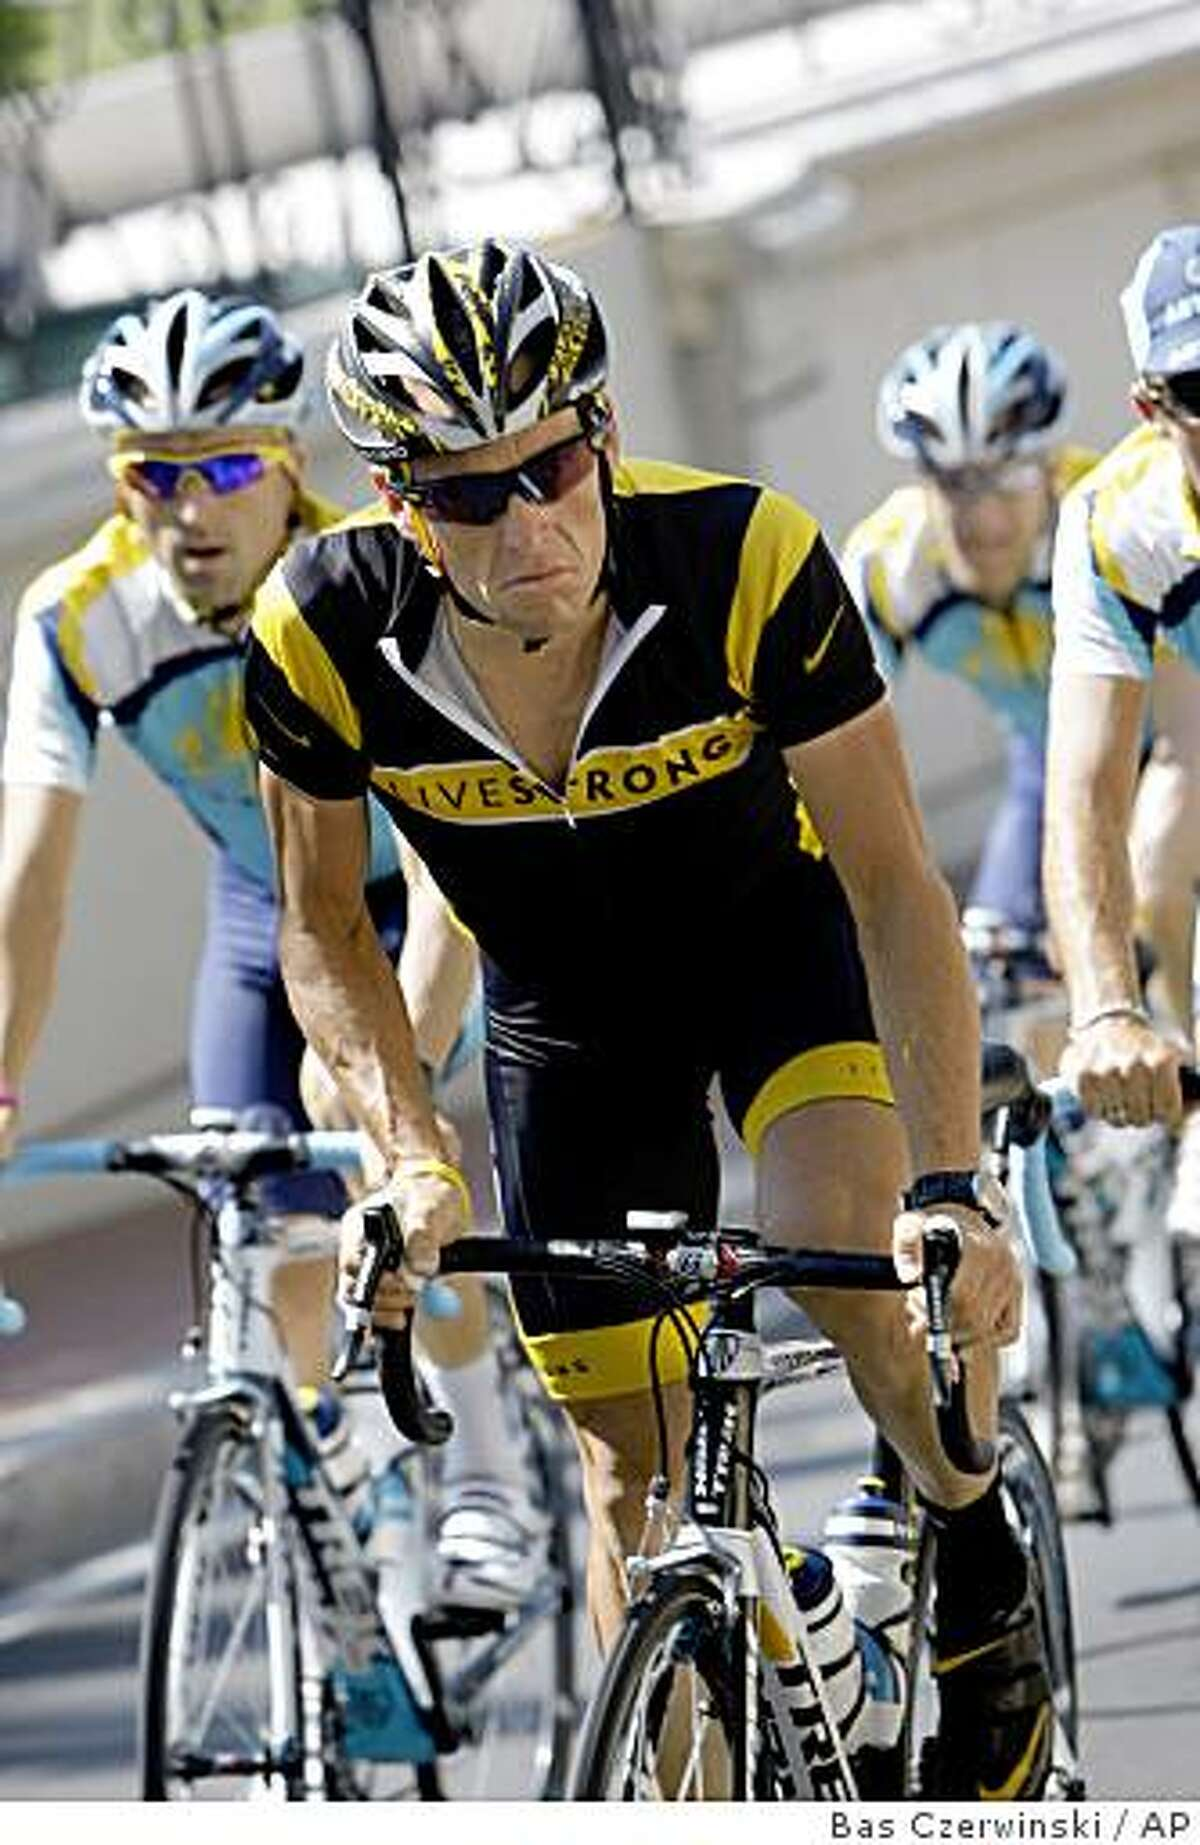 Seven-time Tour de France winner Lance Armstrong of the United States rides with his Astana teammates in Monaco Thursday July 2, 2009, ahead of the start of the 96th edition of the Tour de France cycling race Saturday July 4, 2009. (AP Photo/Bas Czerwinski)